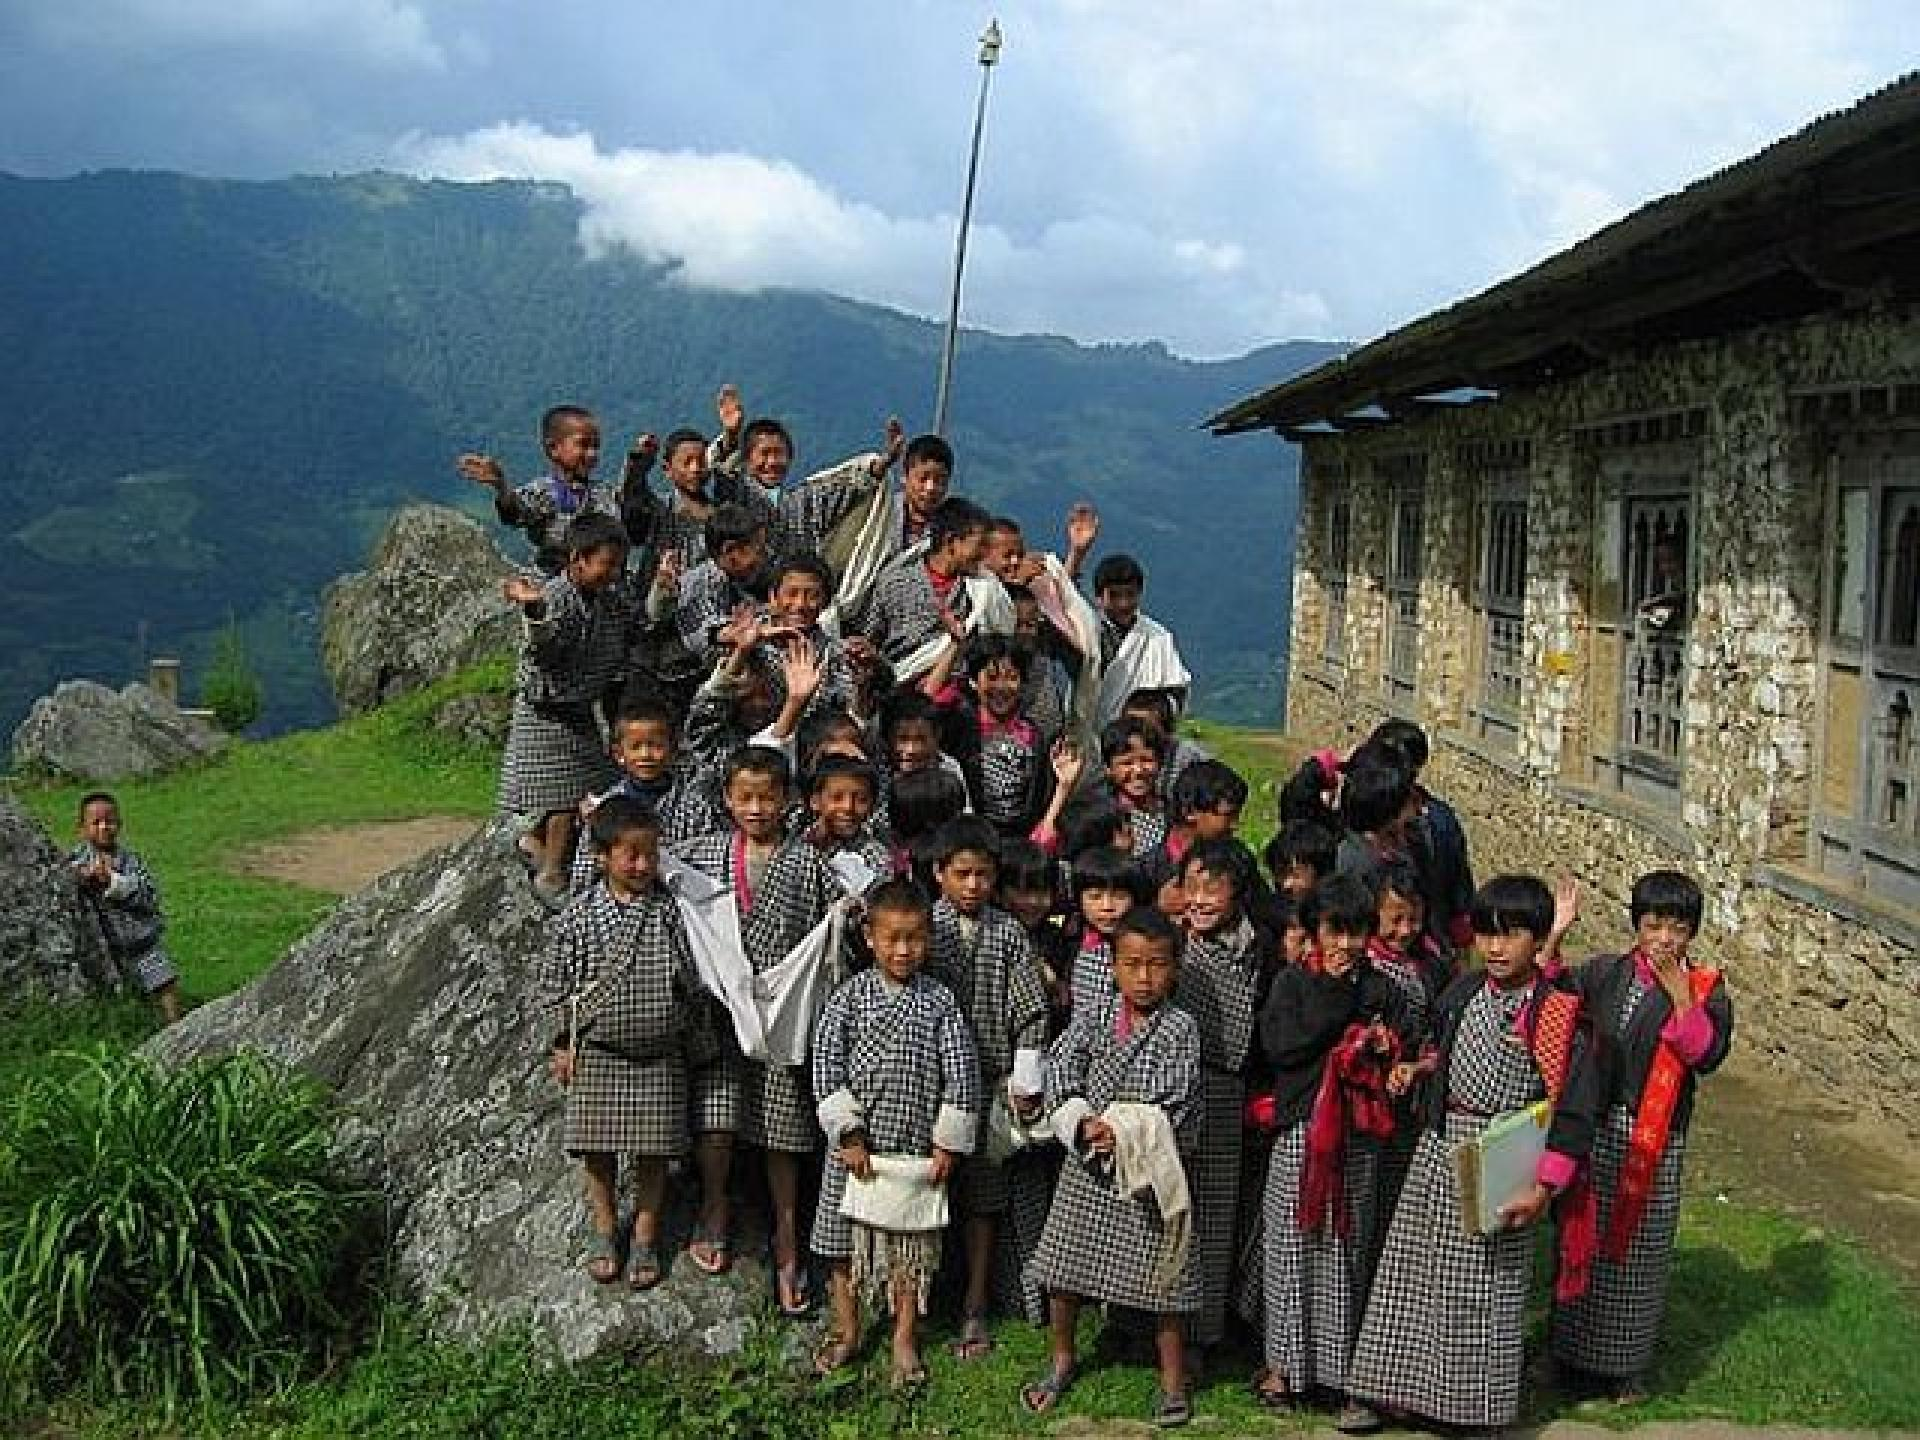 School Kids Children Bhutan Landscape Nature Hd City 1920x1440 ...